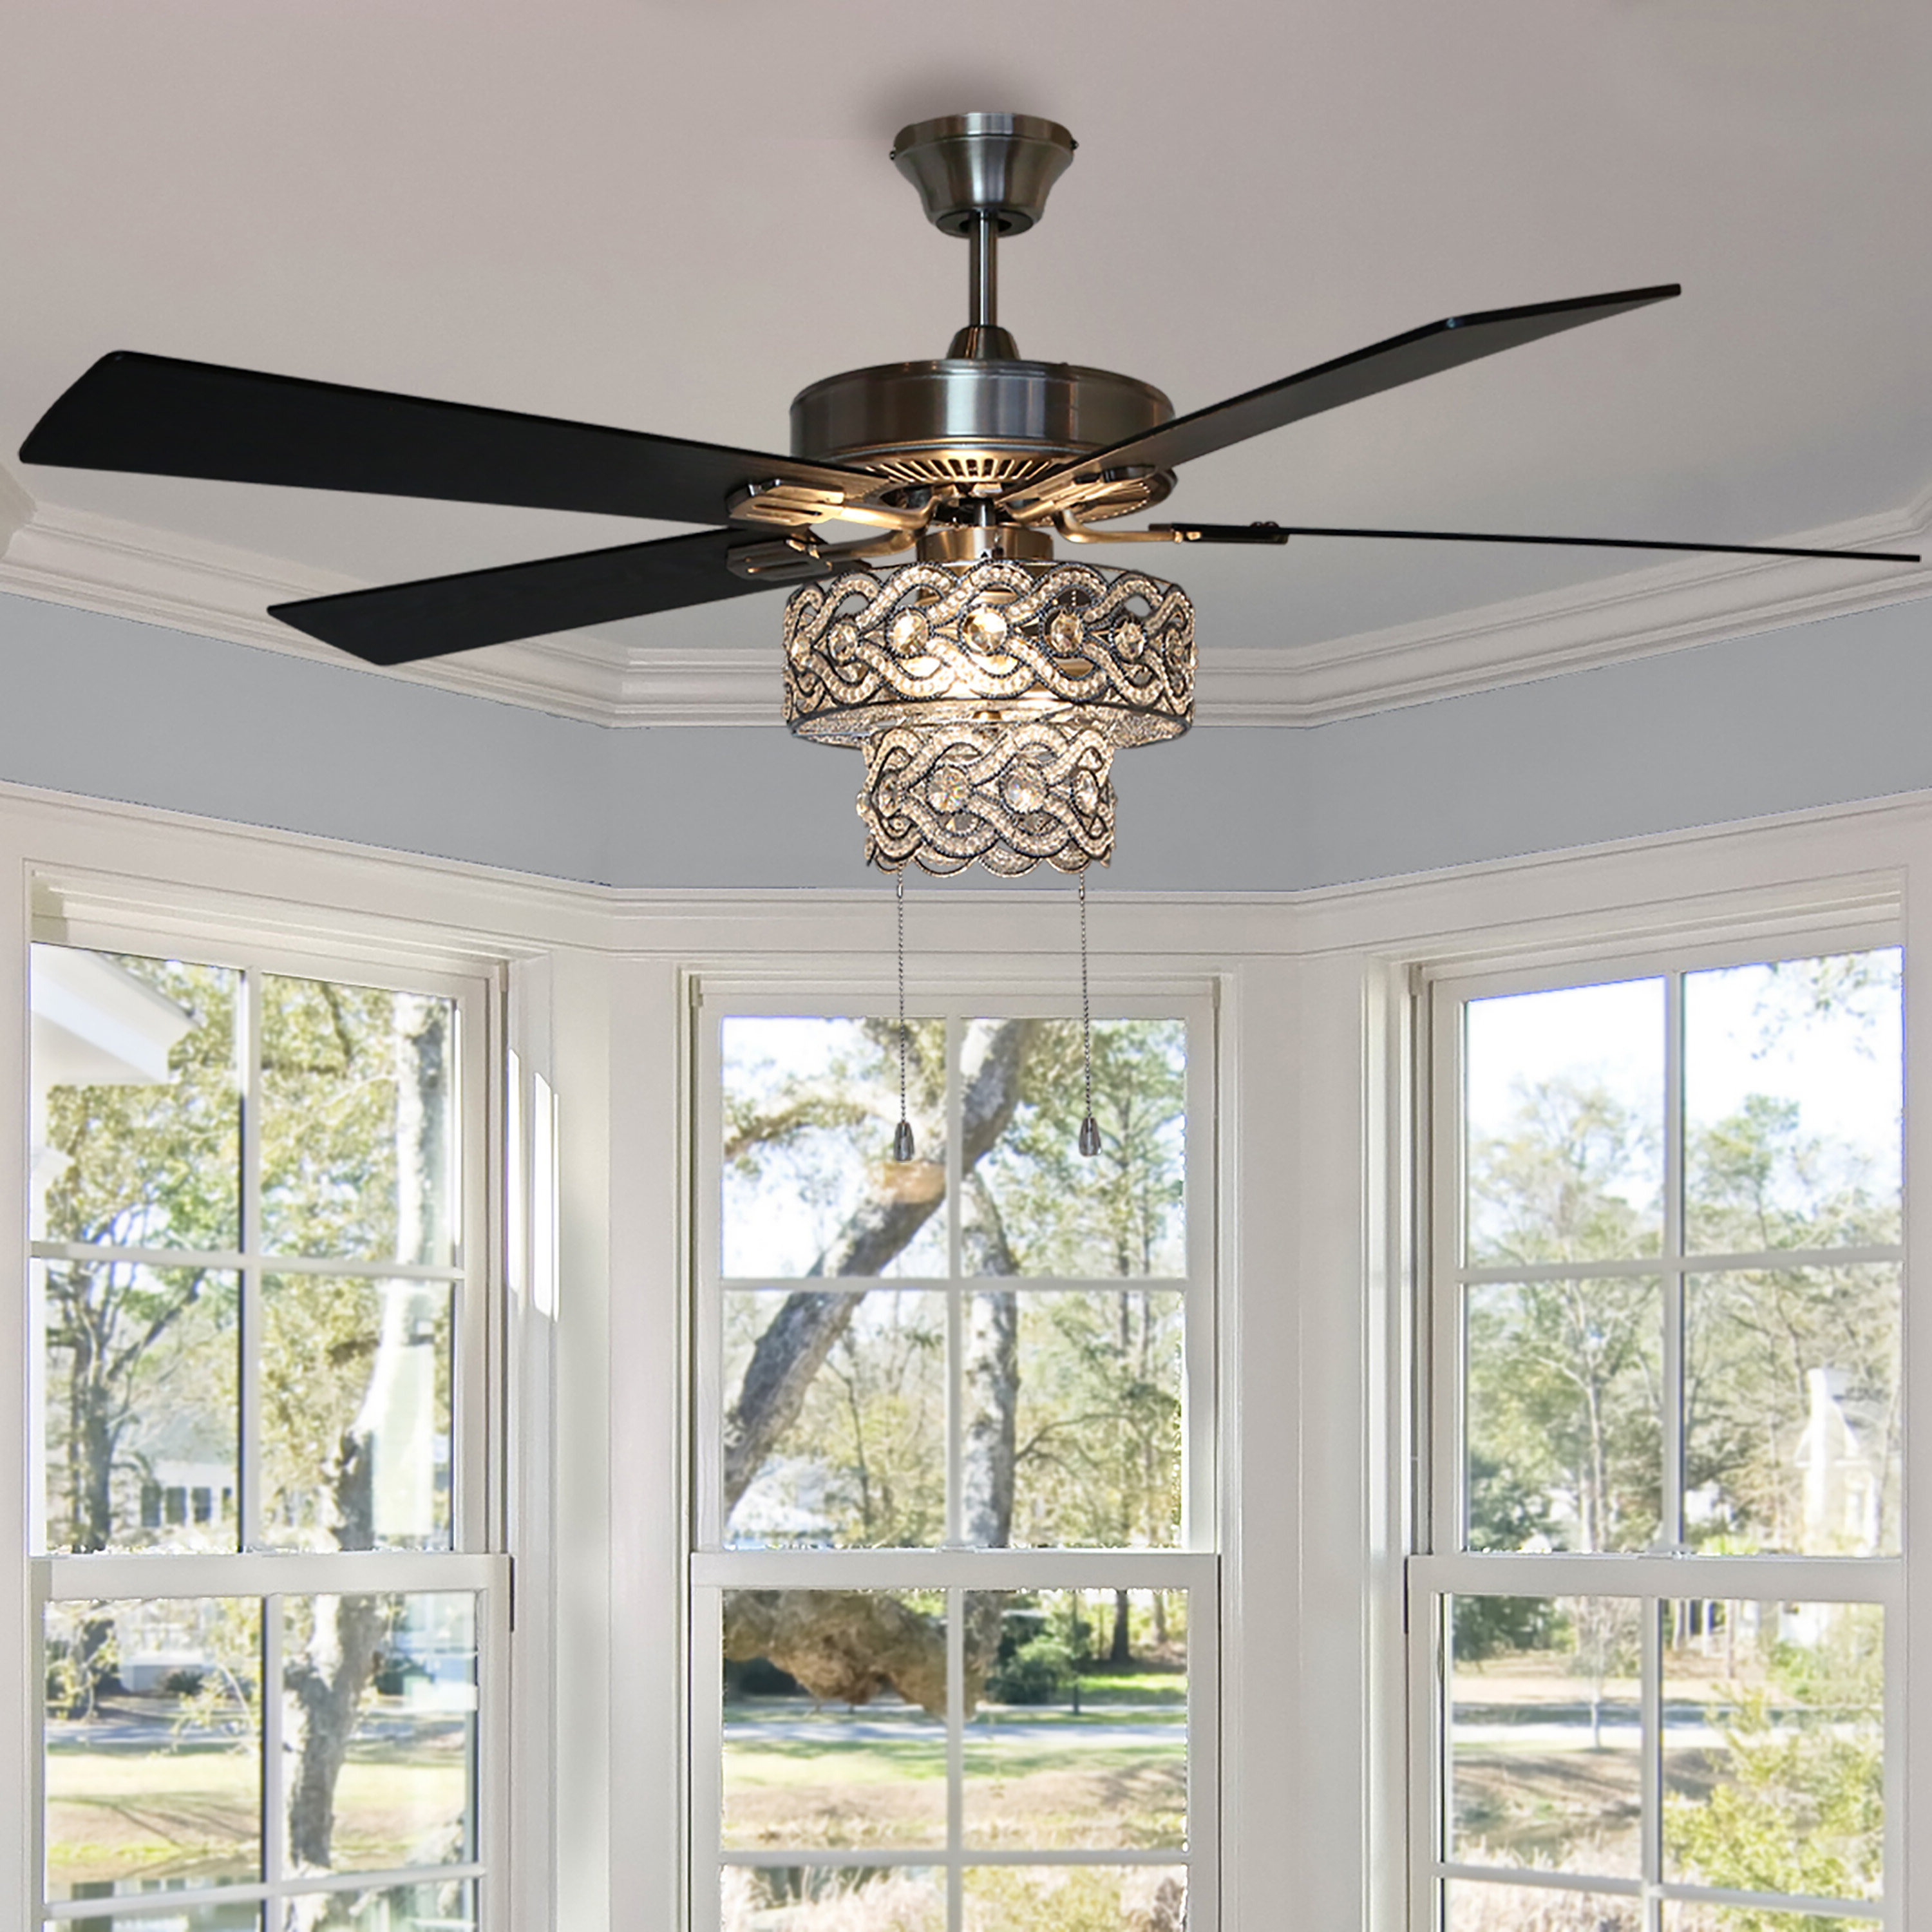 "Newest 52"" Nowthen Beaded Braid 5 Blade Ceiling Fan With Remote, Light Kit Included Throughout Norah 5 Blade Ceiling Fans (View 8 of 20)"